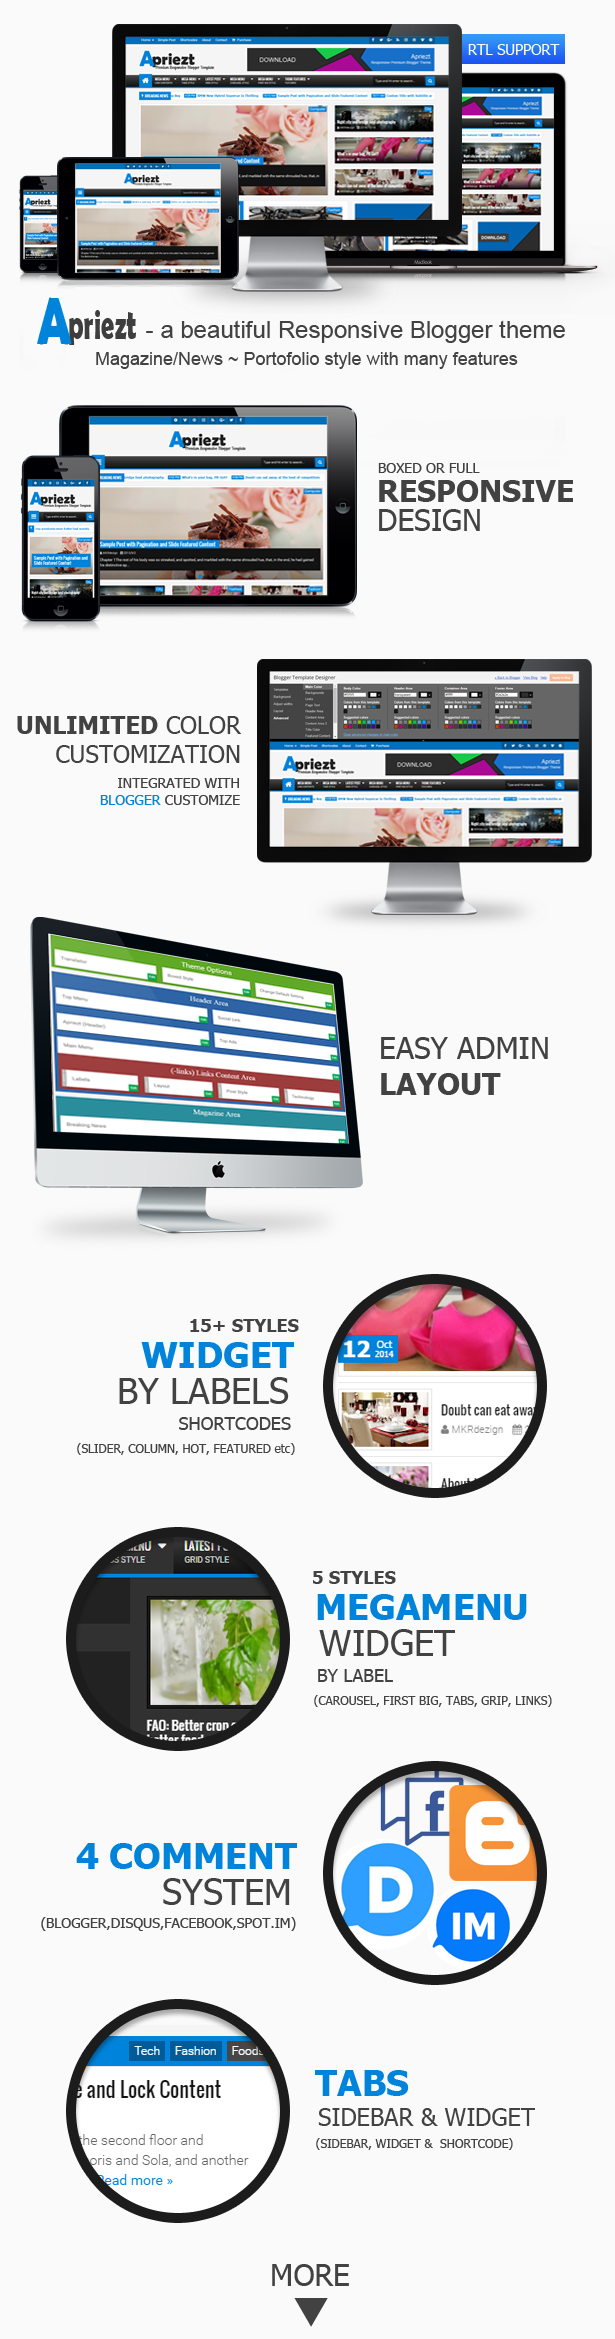 Apriezt Responsive Blogger Theme Features